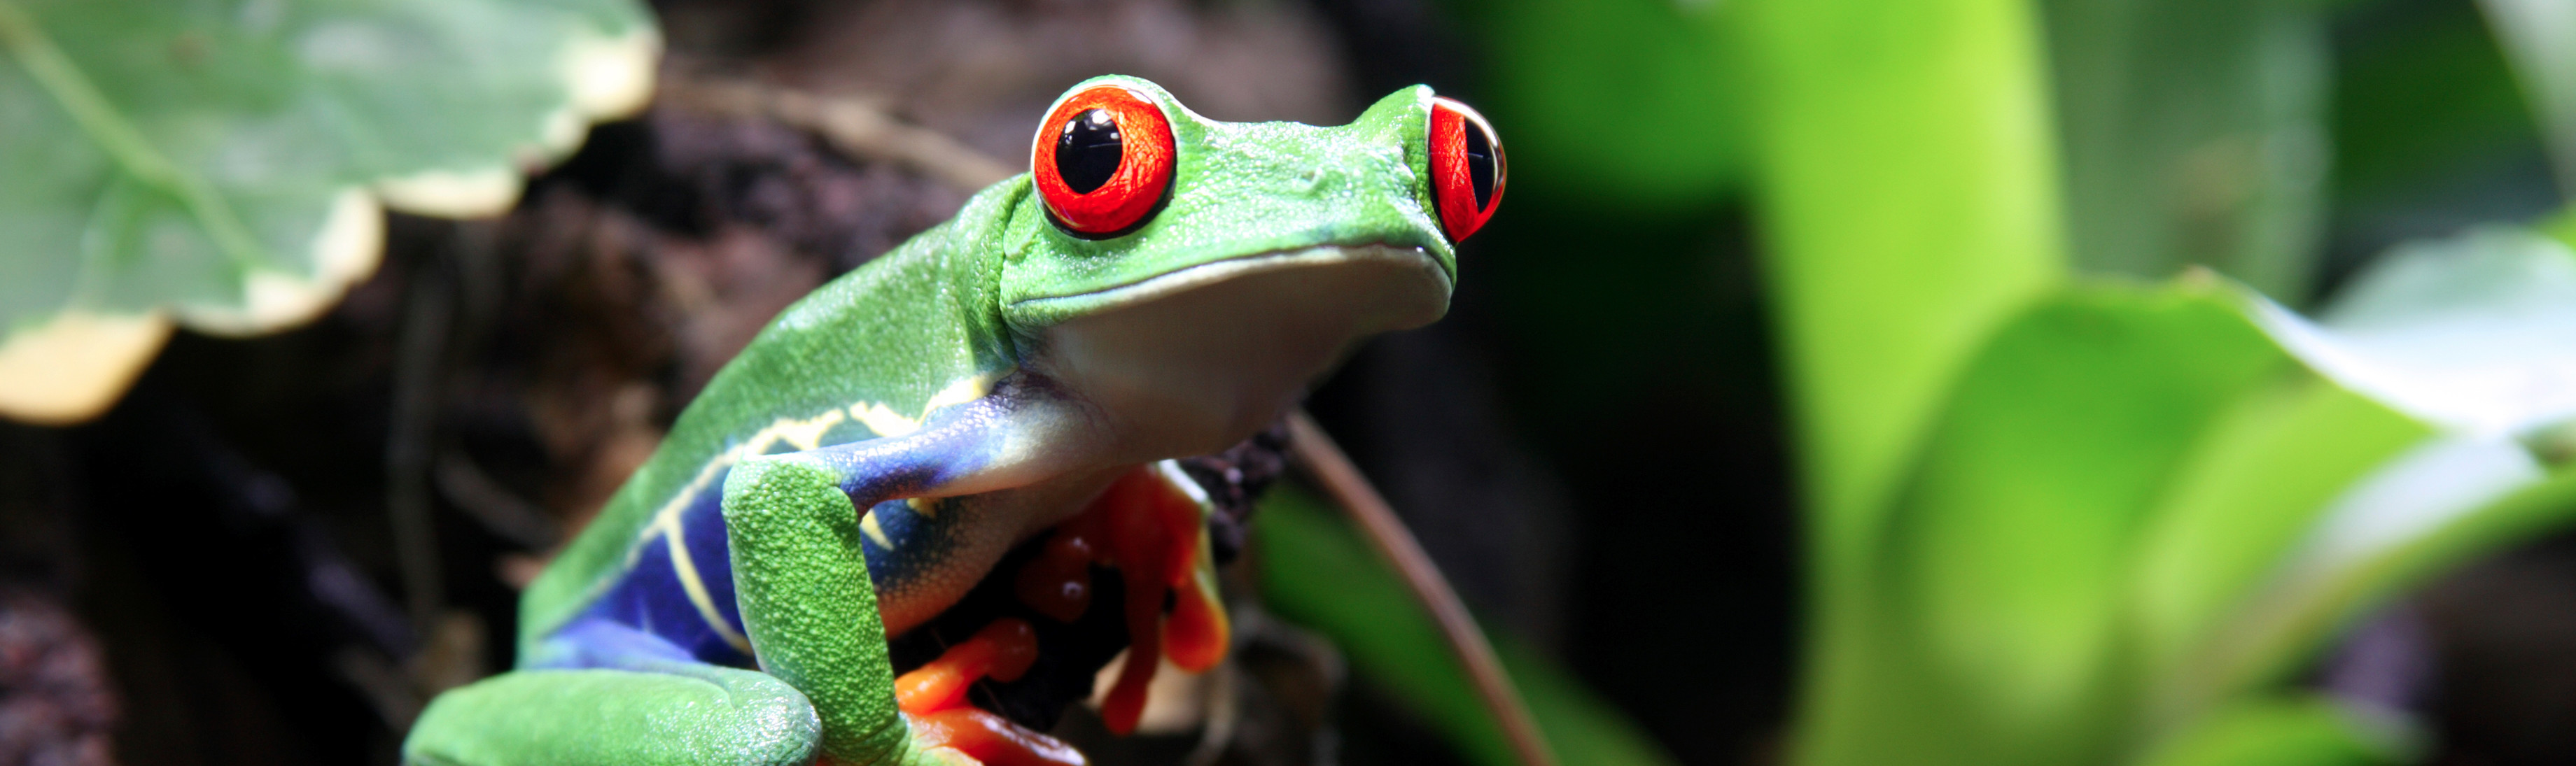 Res: 3680x1095, White-Lipped Tree Frog Wallpapers 24 - 3680 X 1095